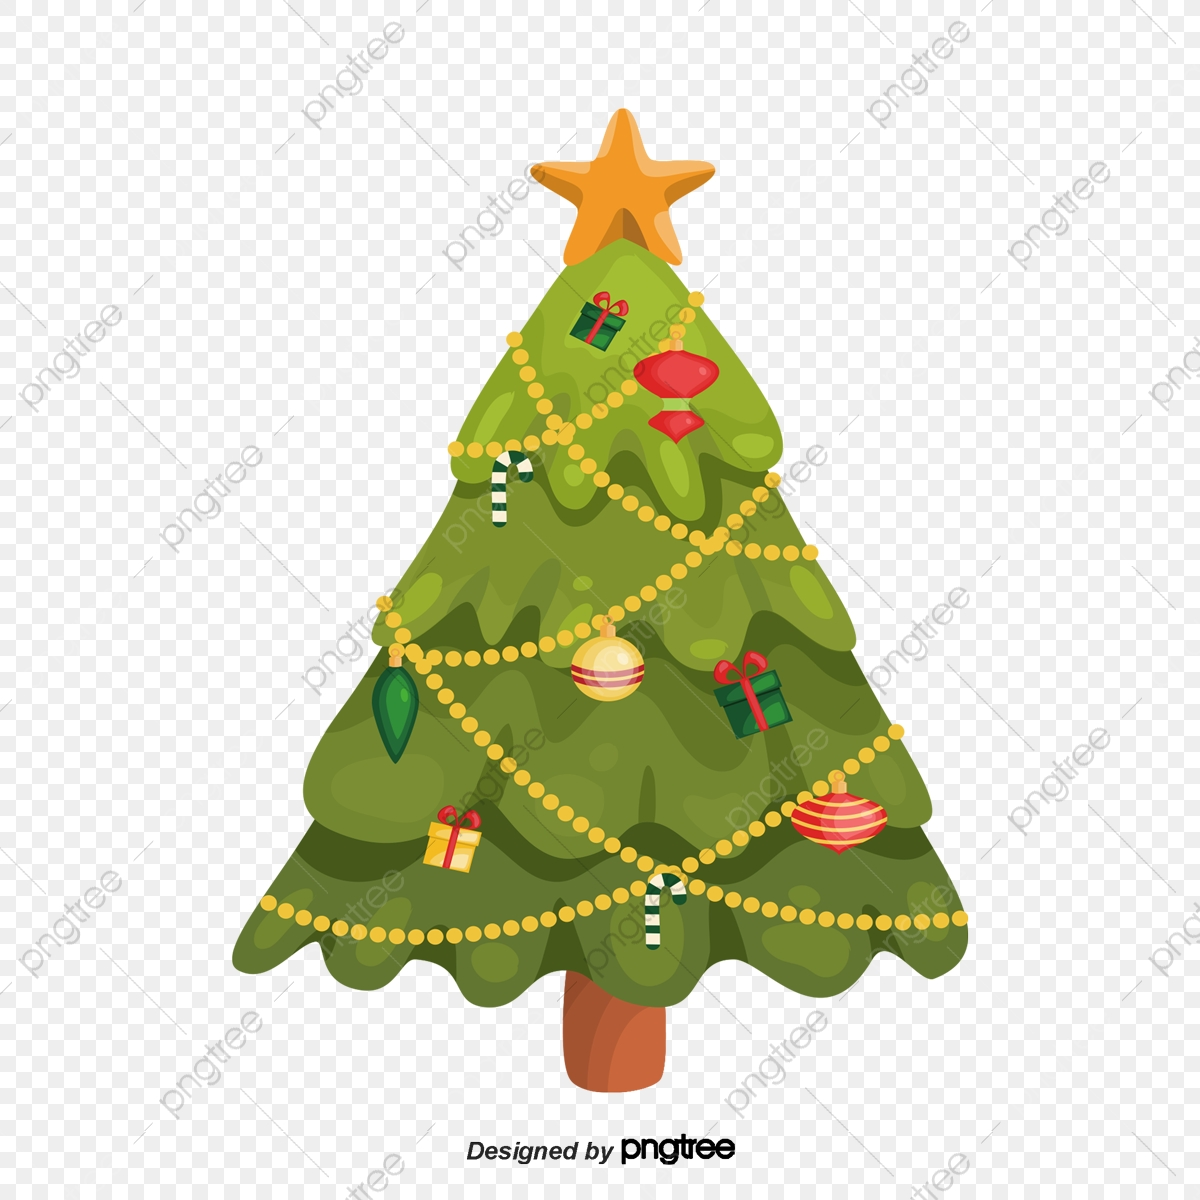 cartoon christmas tree cartoon christmas tree christmas png transparent clipart image and psd file for free download https pngtree com freepng cartoon christmas tree 4280390 html